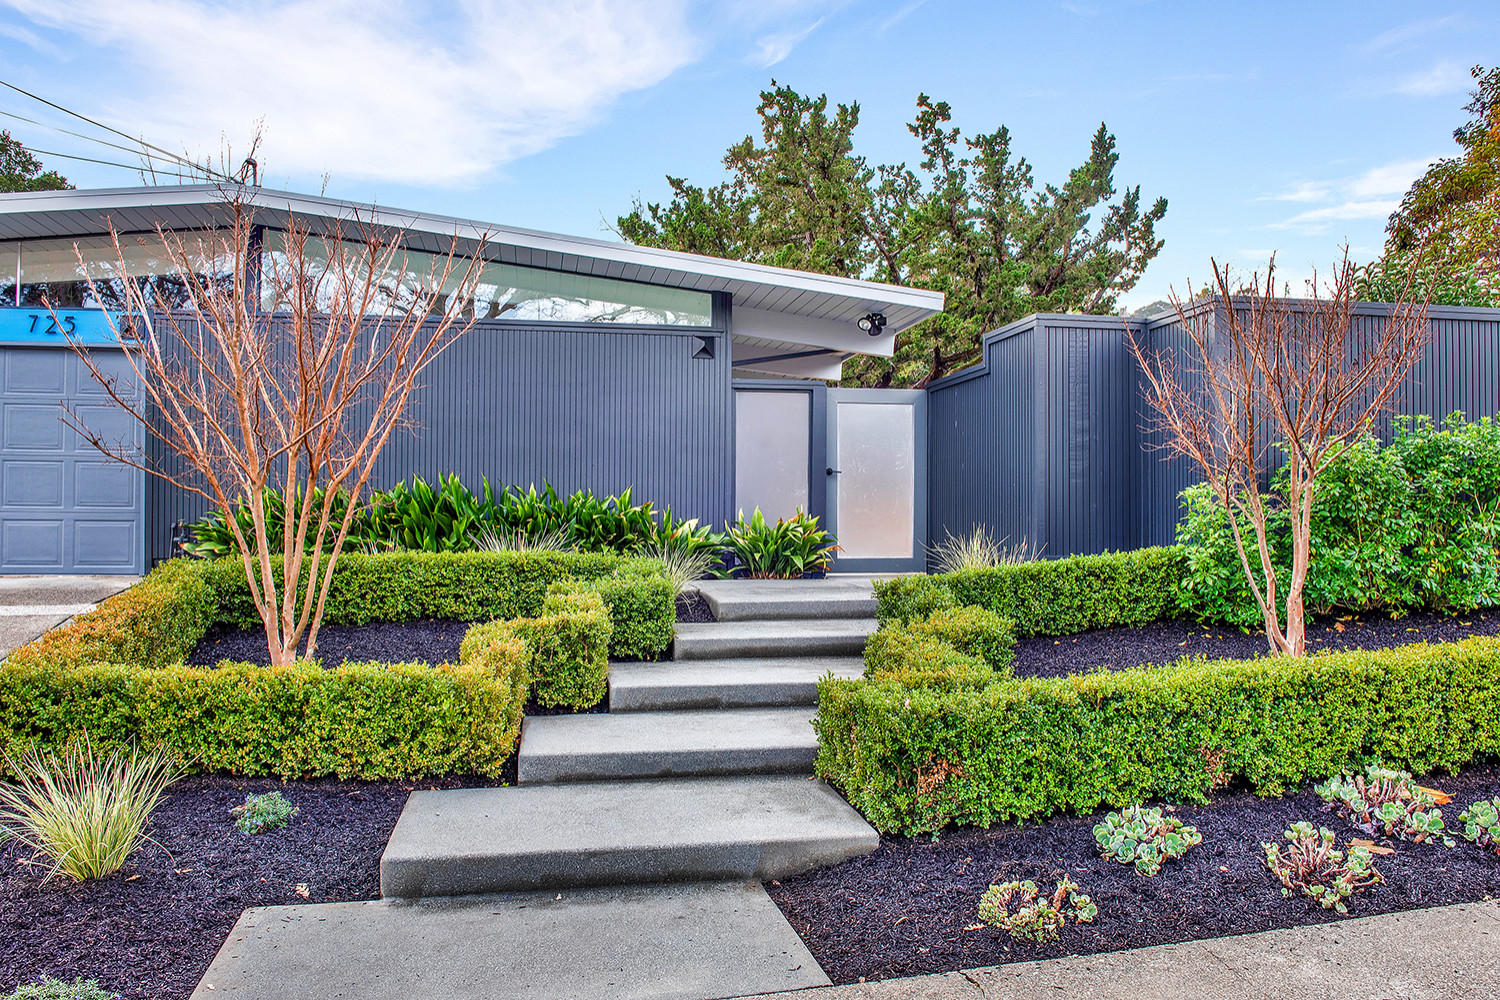 Eichler Modern Architecture Full Remodel + Staging